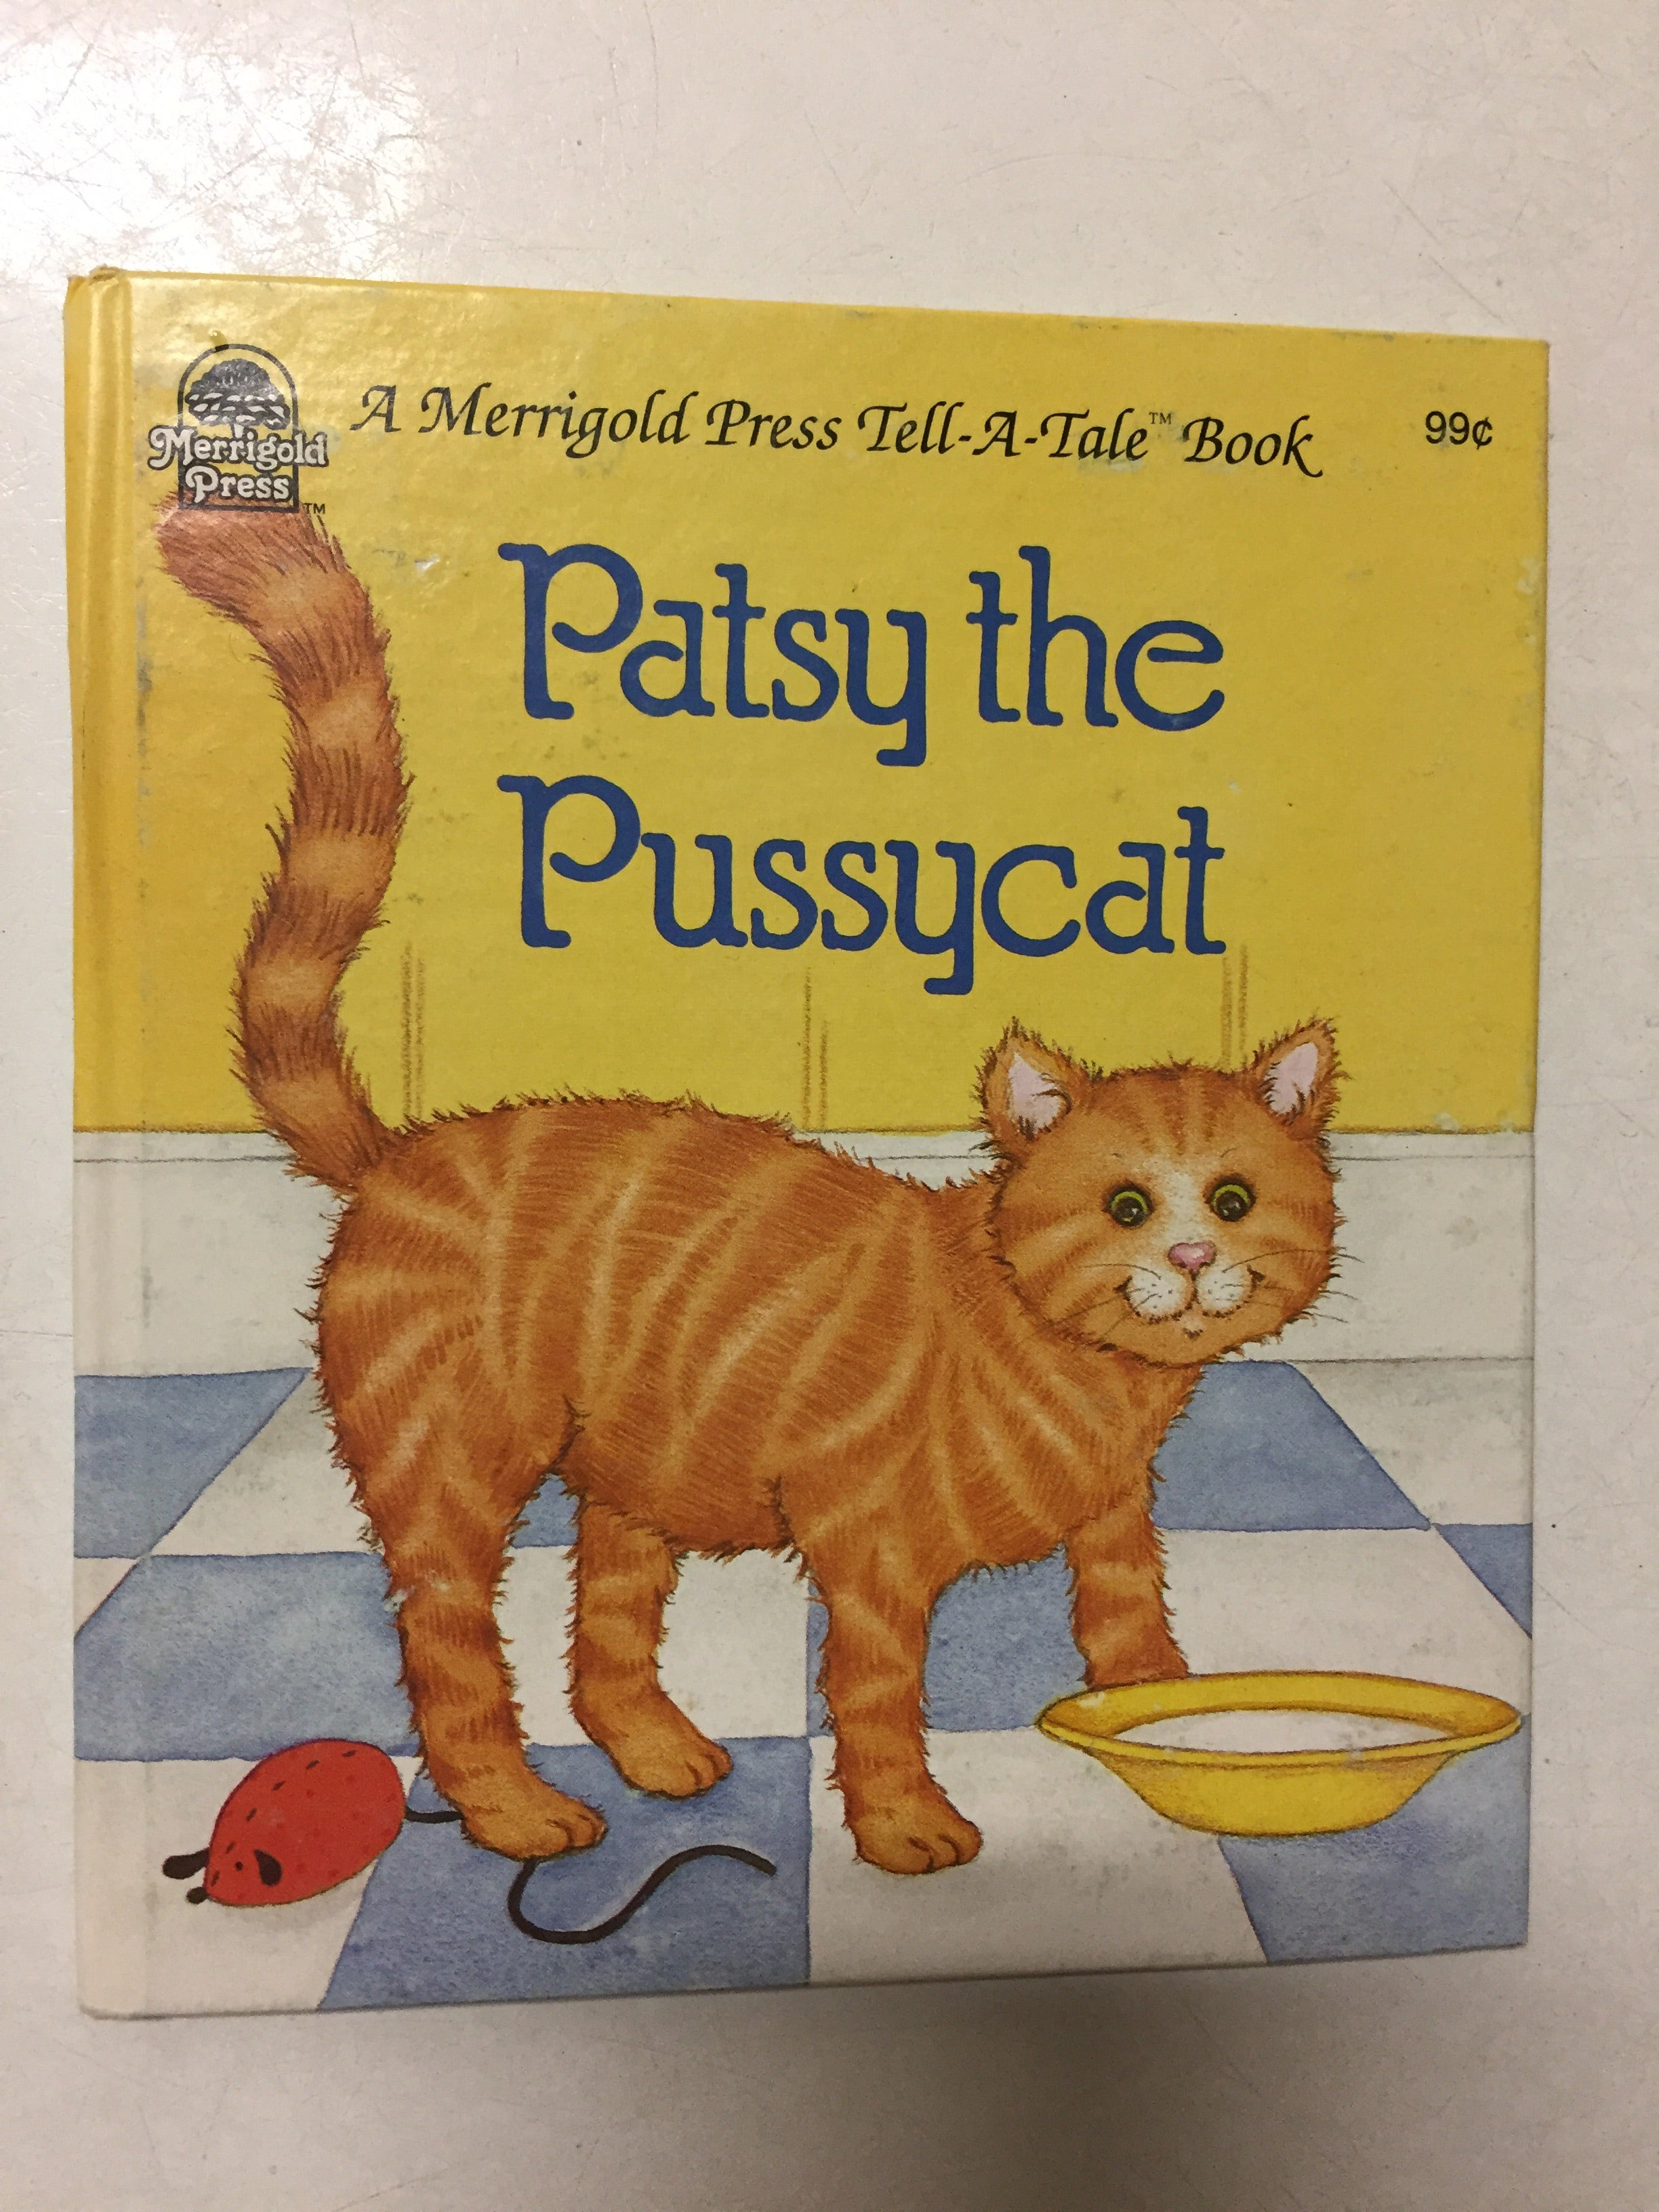 Patsy the Pussycat - Slick Cat Books